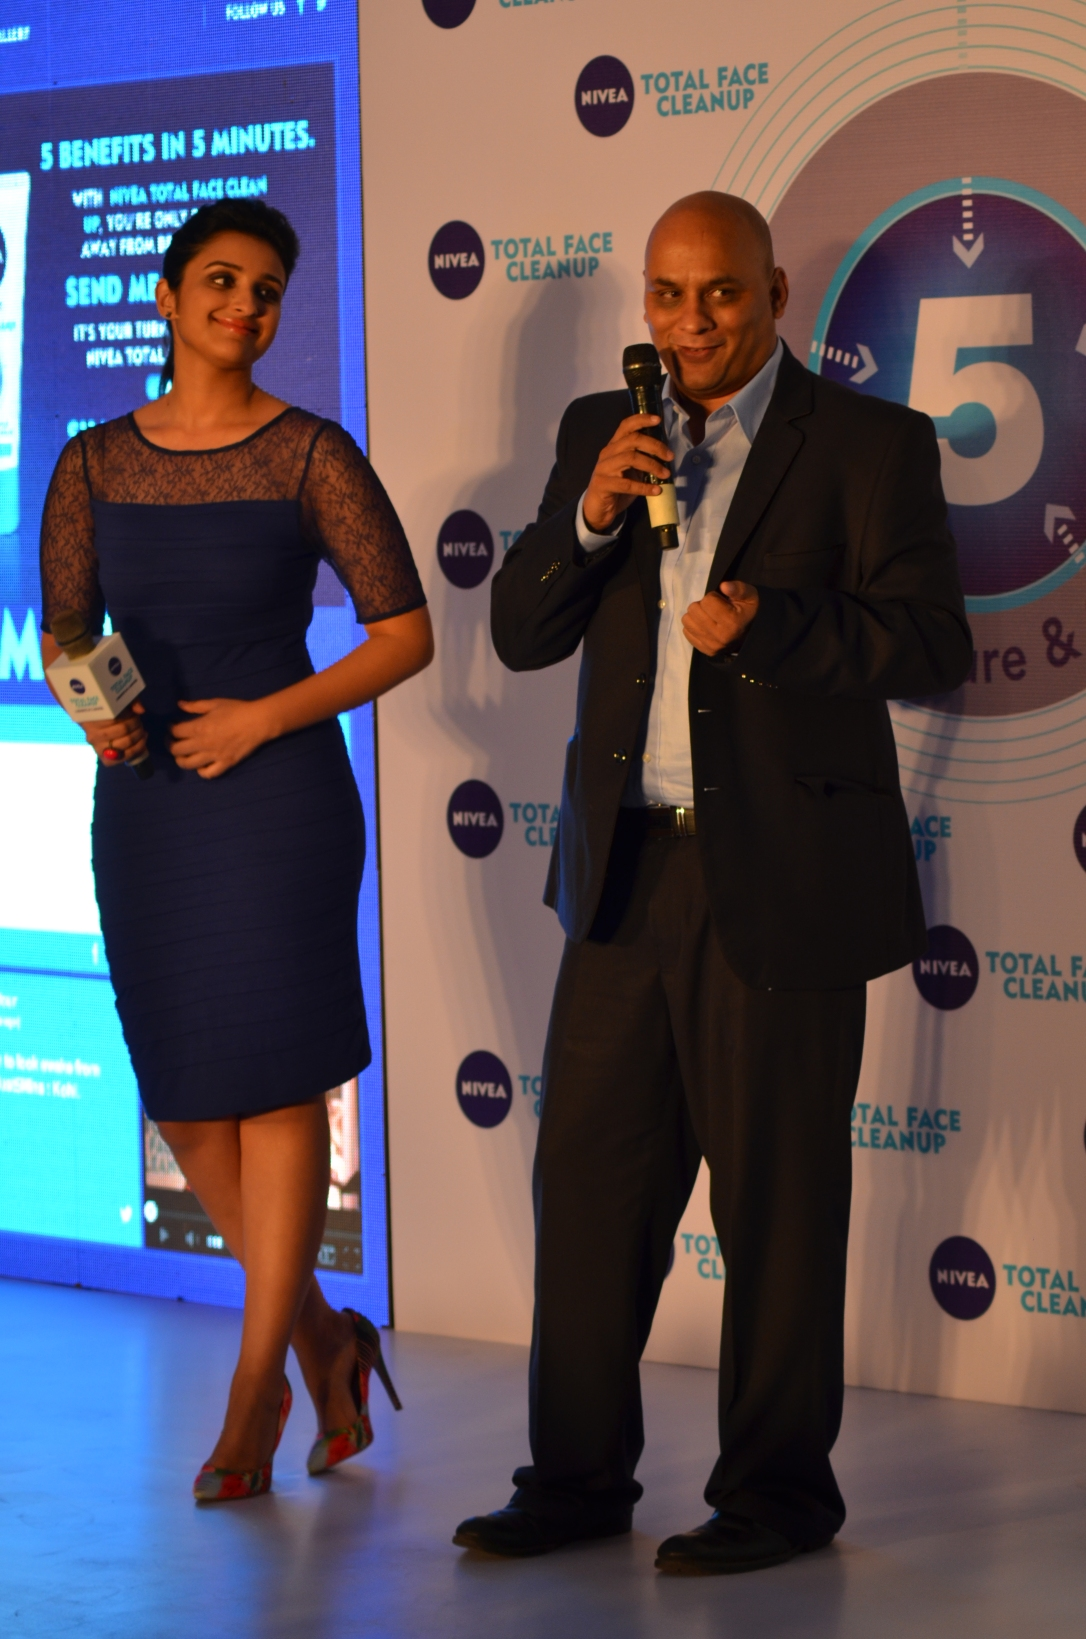 Parineeti Chopra meets NIVEA India Marketing Director, Mr. Sunil Gadgil.